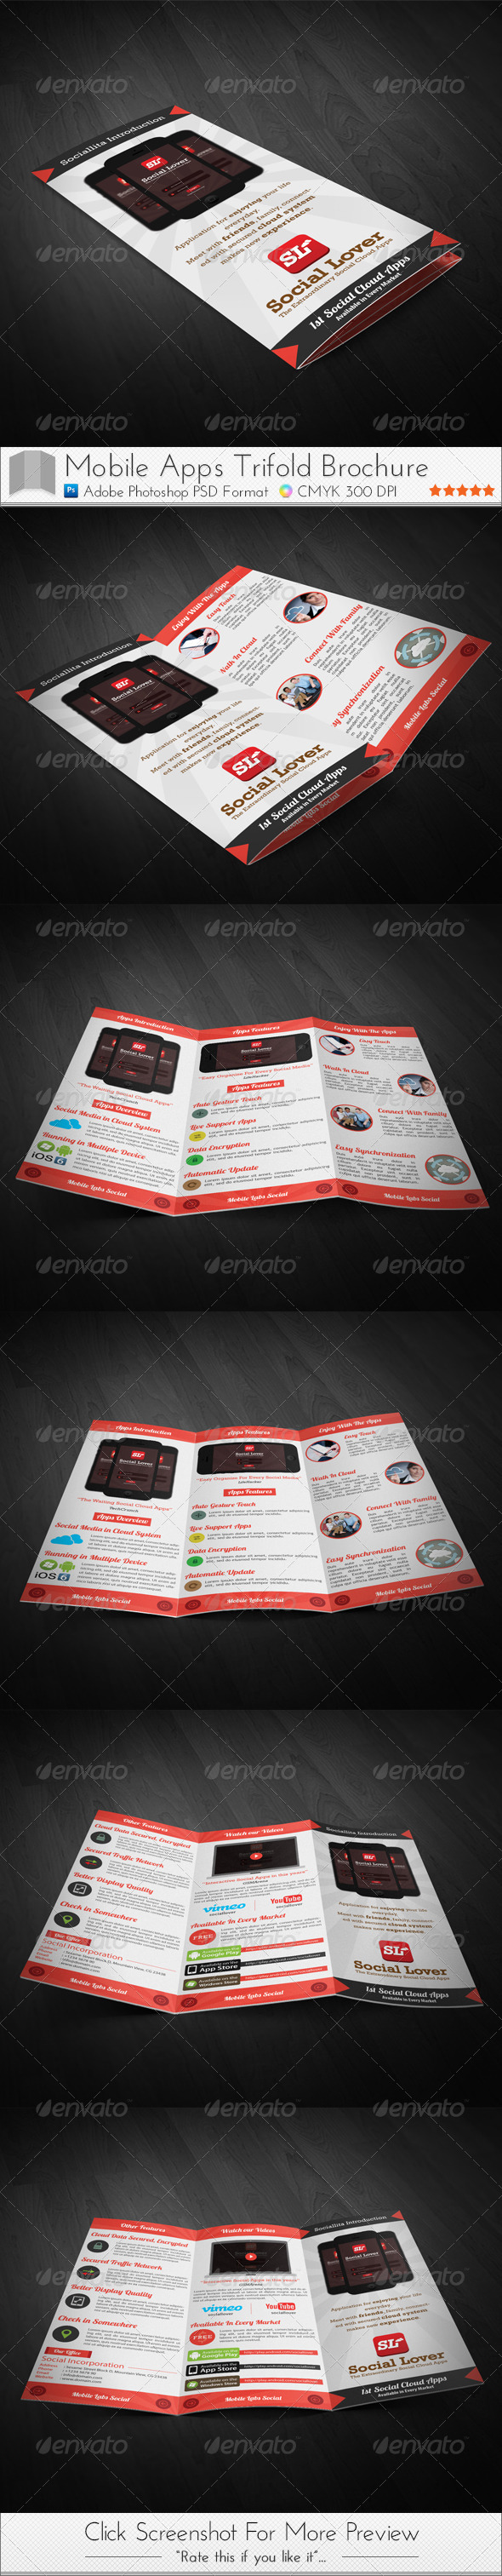 GraphicRiver Social Media Cloud Apps Trifold Brochure 4117992